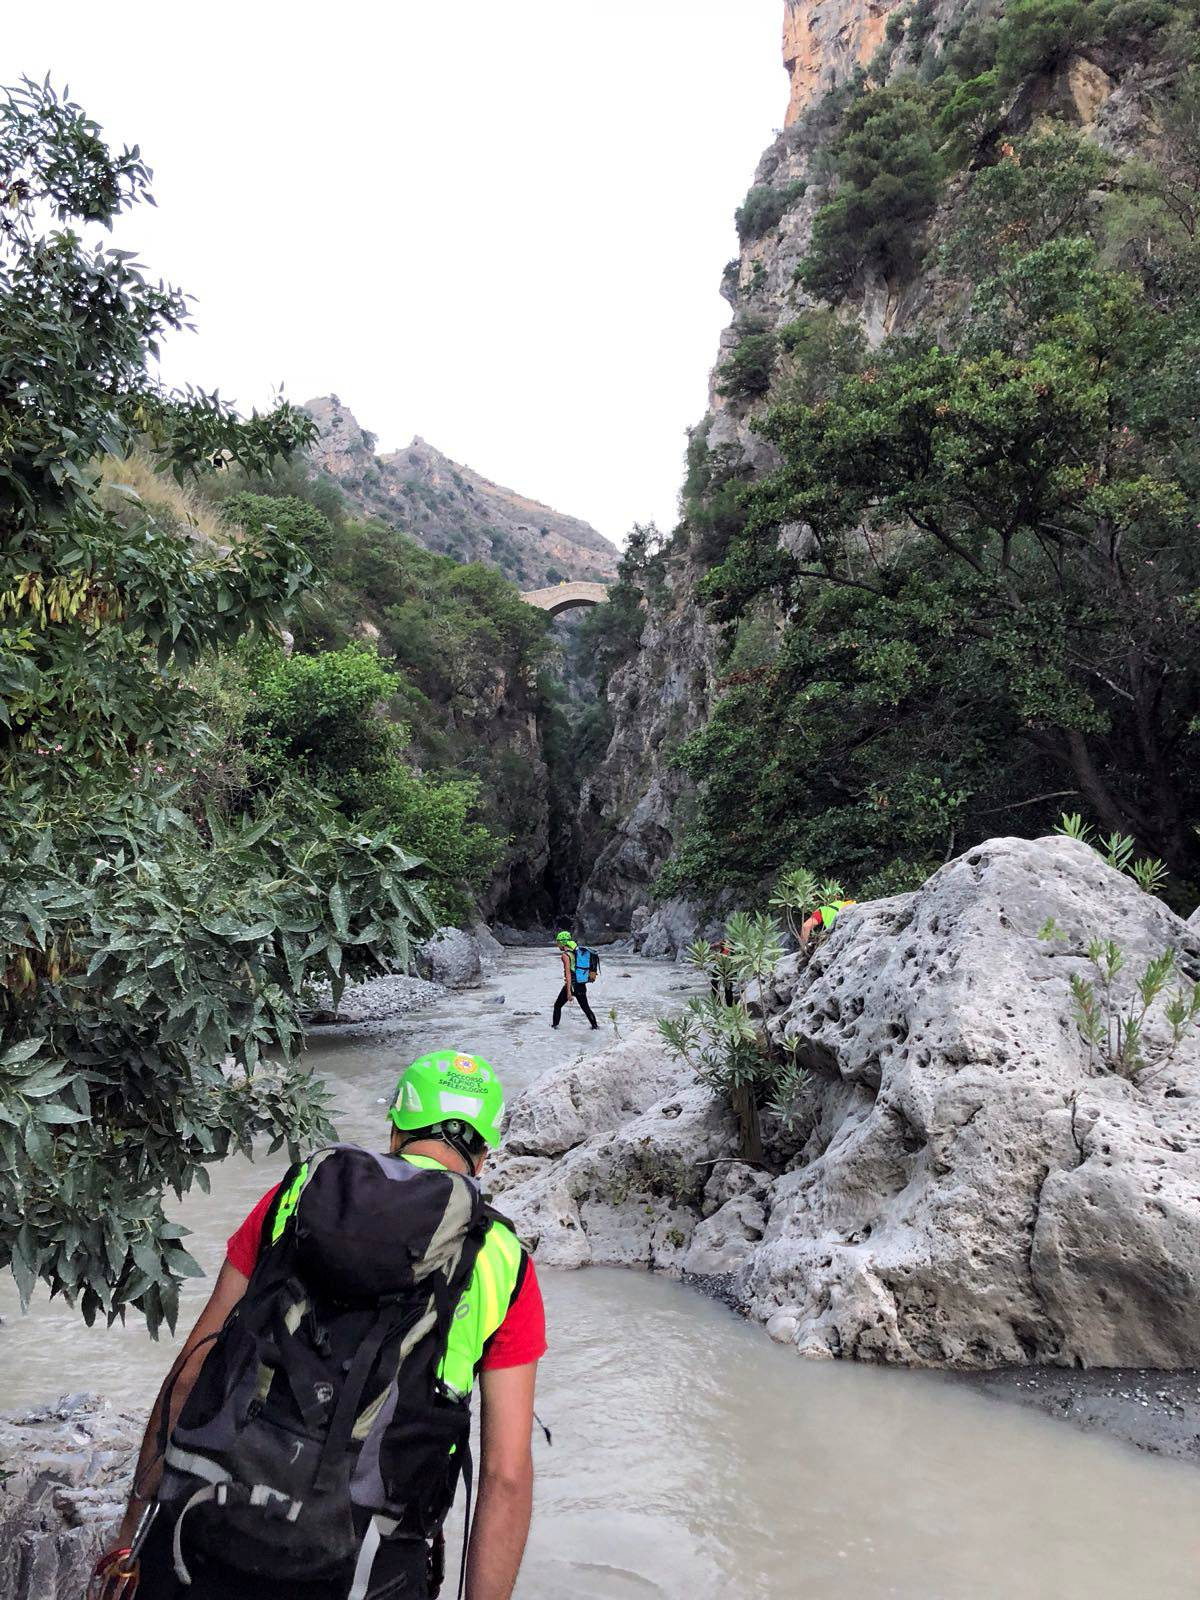 Alpine rescue workers cross the canyon of the river Raganello as they search the area after several people were killed in a mountain gorge flooding, in the municipality of Civita